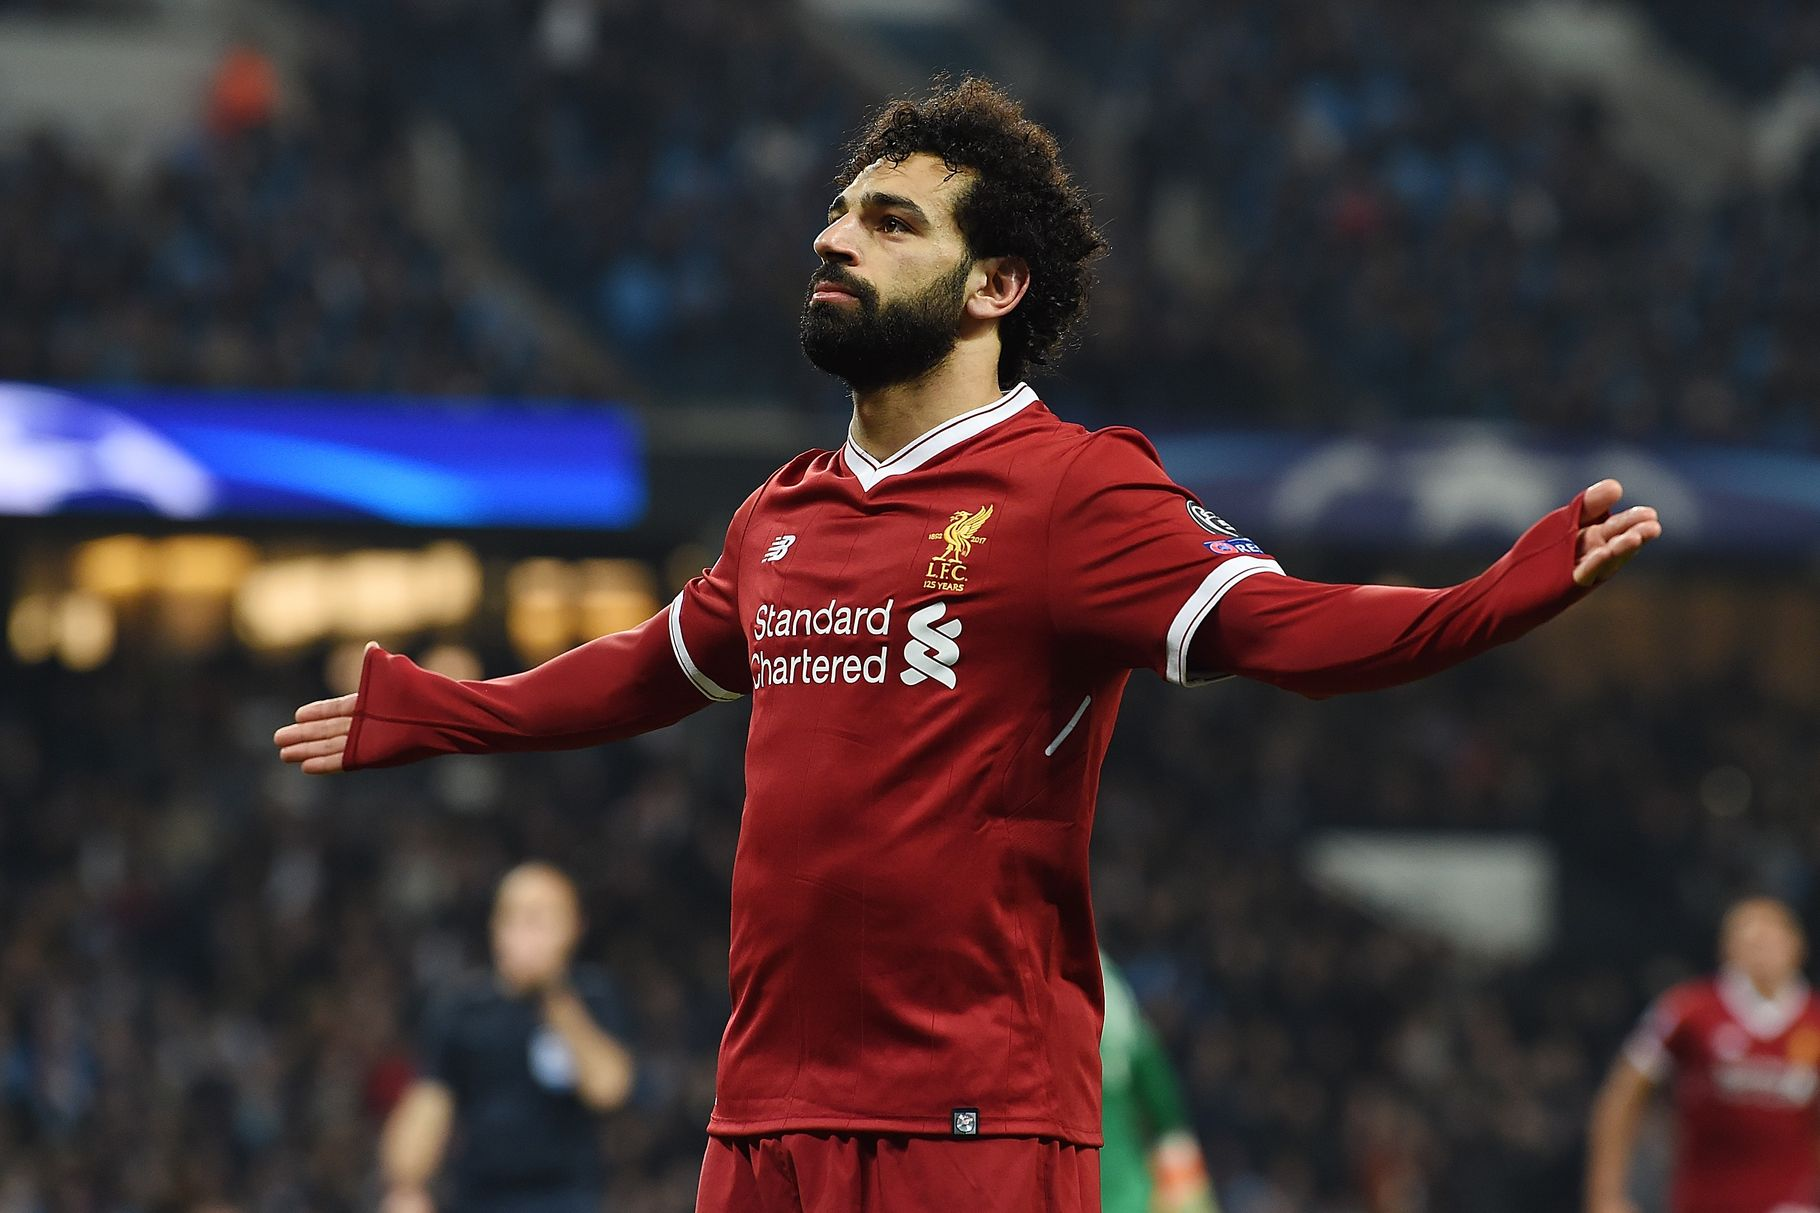 Soccer Star Mo Salah's Massive Popularity is Changing Perceptions of Muslims in the UK